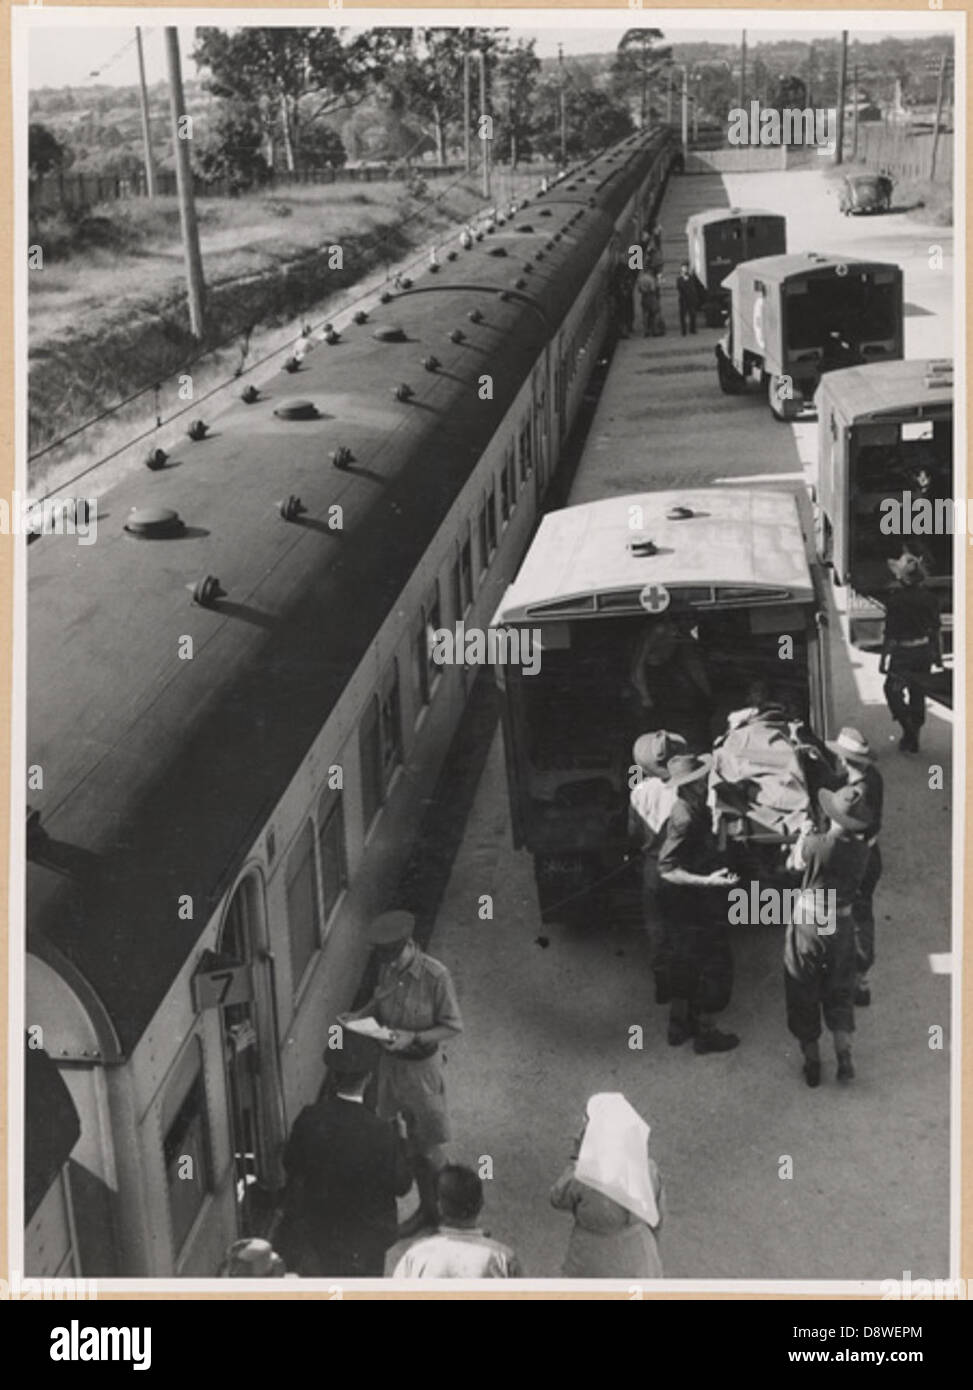 Ambulance train at Rosehill transferring wounded into ambulance, Rosehill, NSW - Stock Image